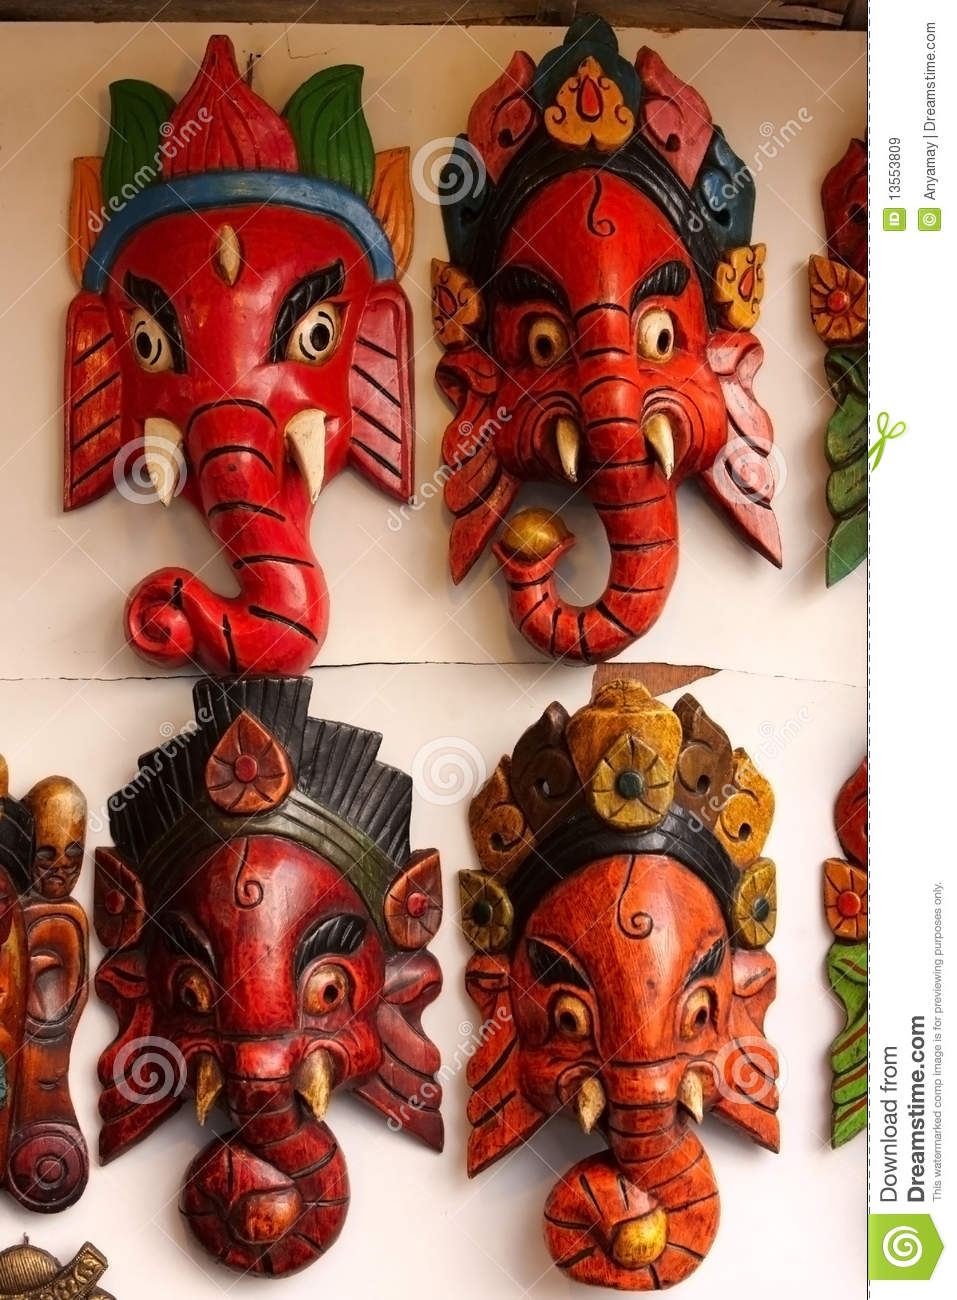 Credit Cards For Fair Credit >> Indian Masks Royalty Free Stock Images - Image: 13553809